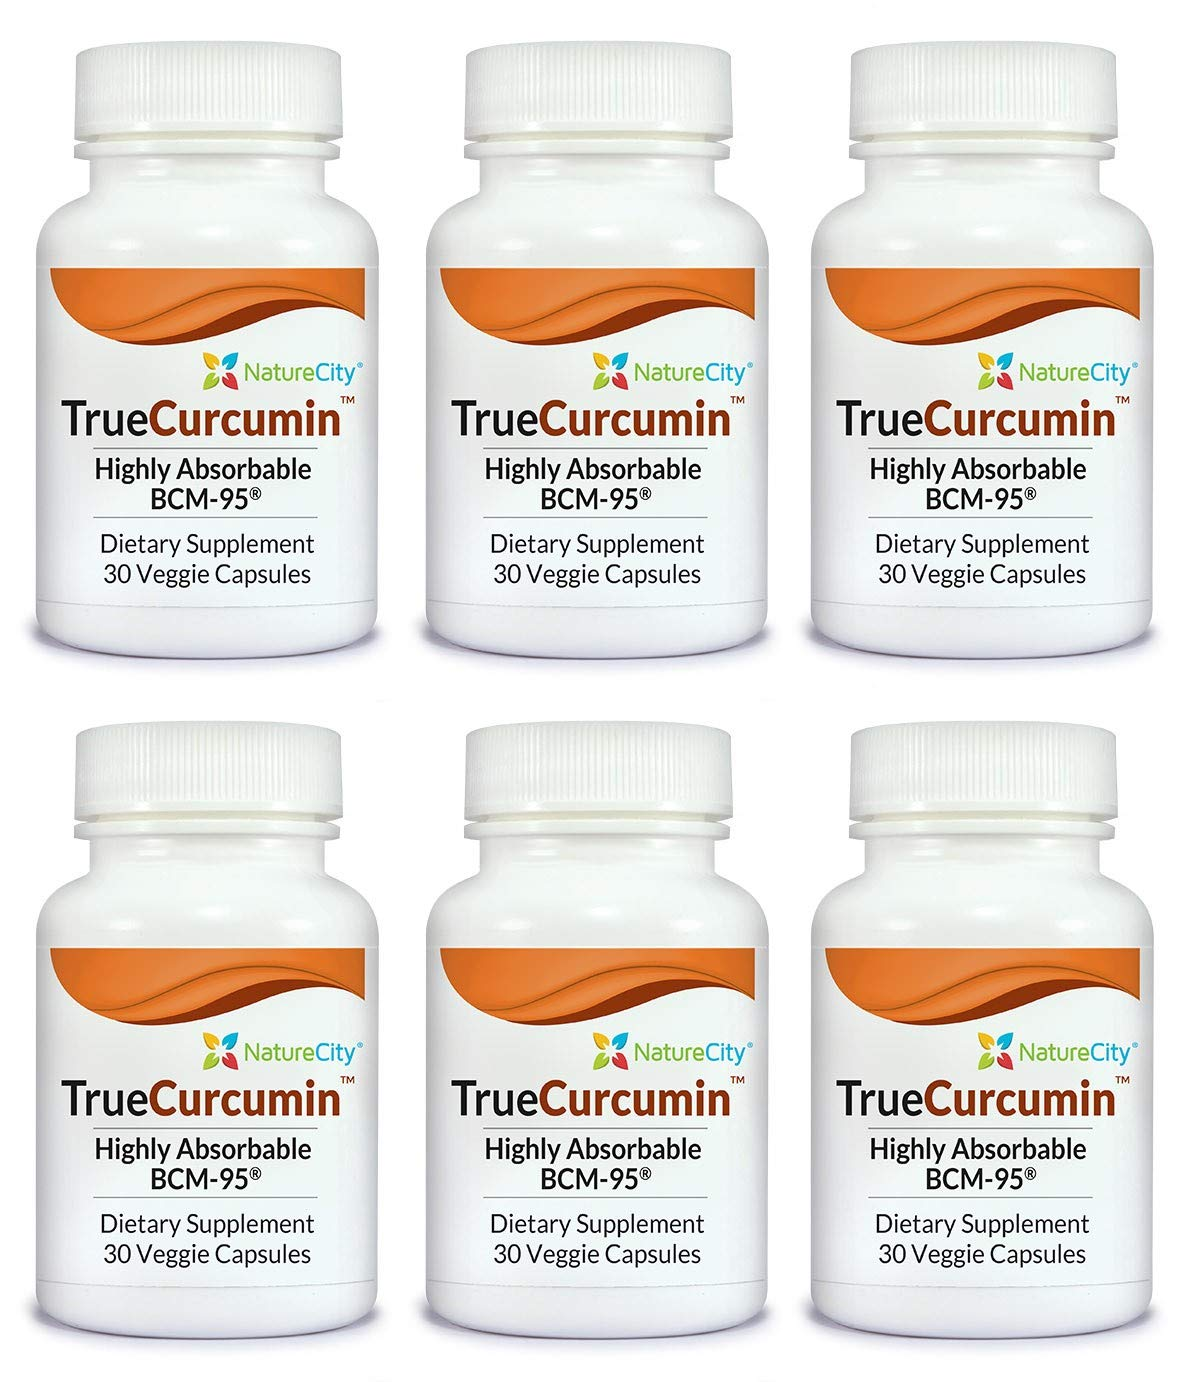 TrueCurcumin Supplement with Essential Turmeric Oil - Highly Absorbable BCM-95-30 Veggie Capsules - 6 Pack